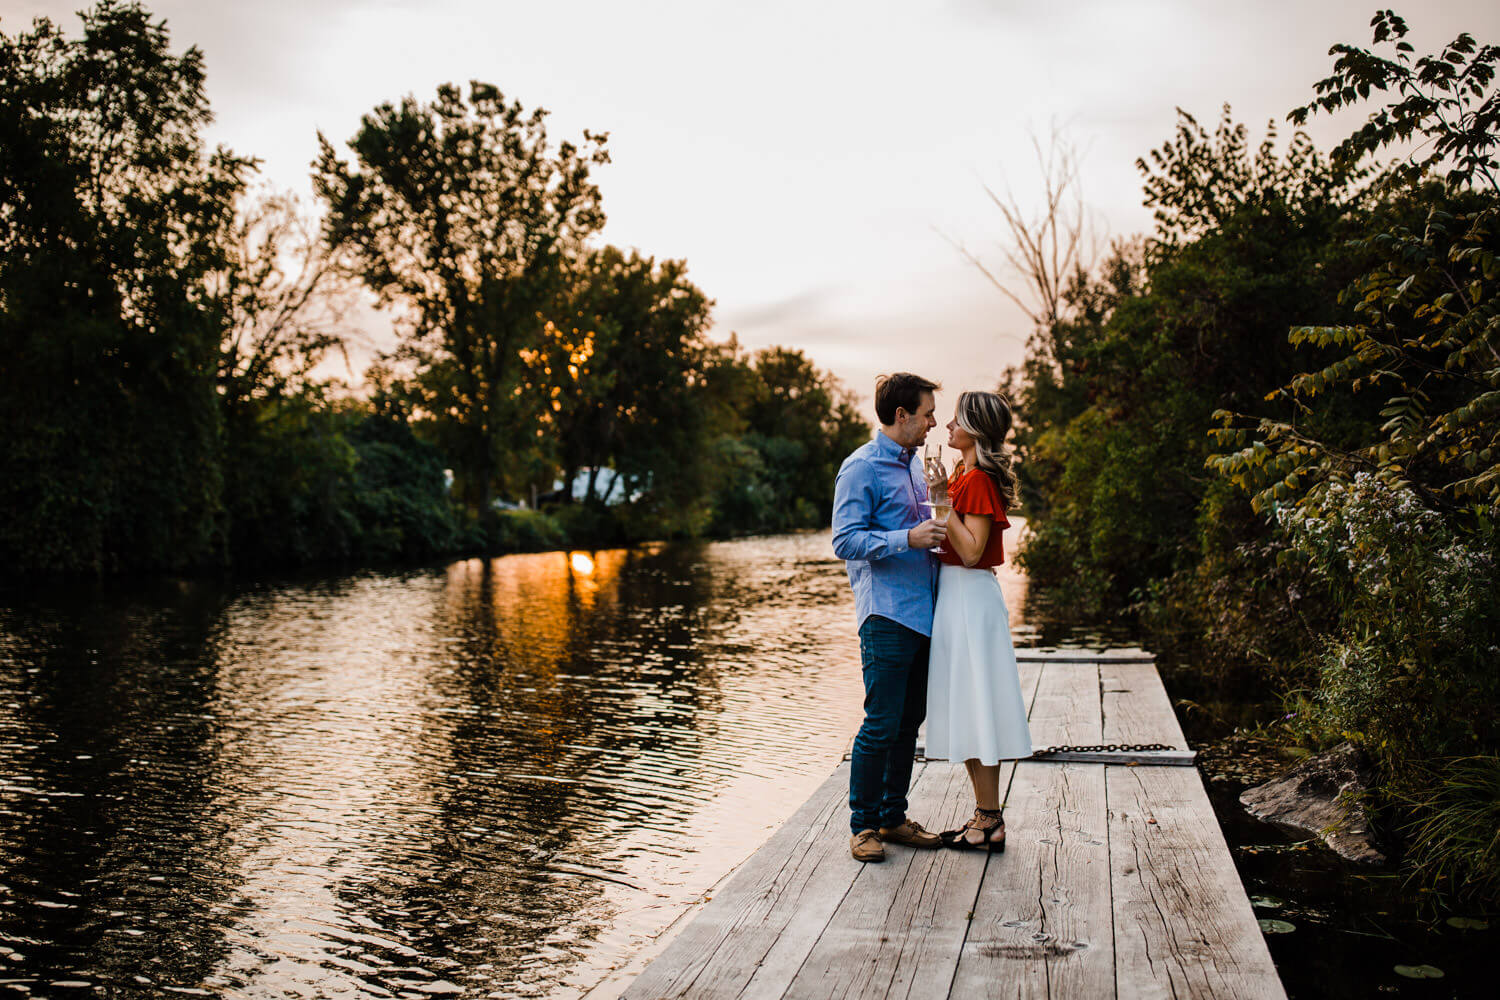 couple drink wine by river - merrickville engagement - carley teresa photography